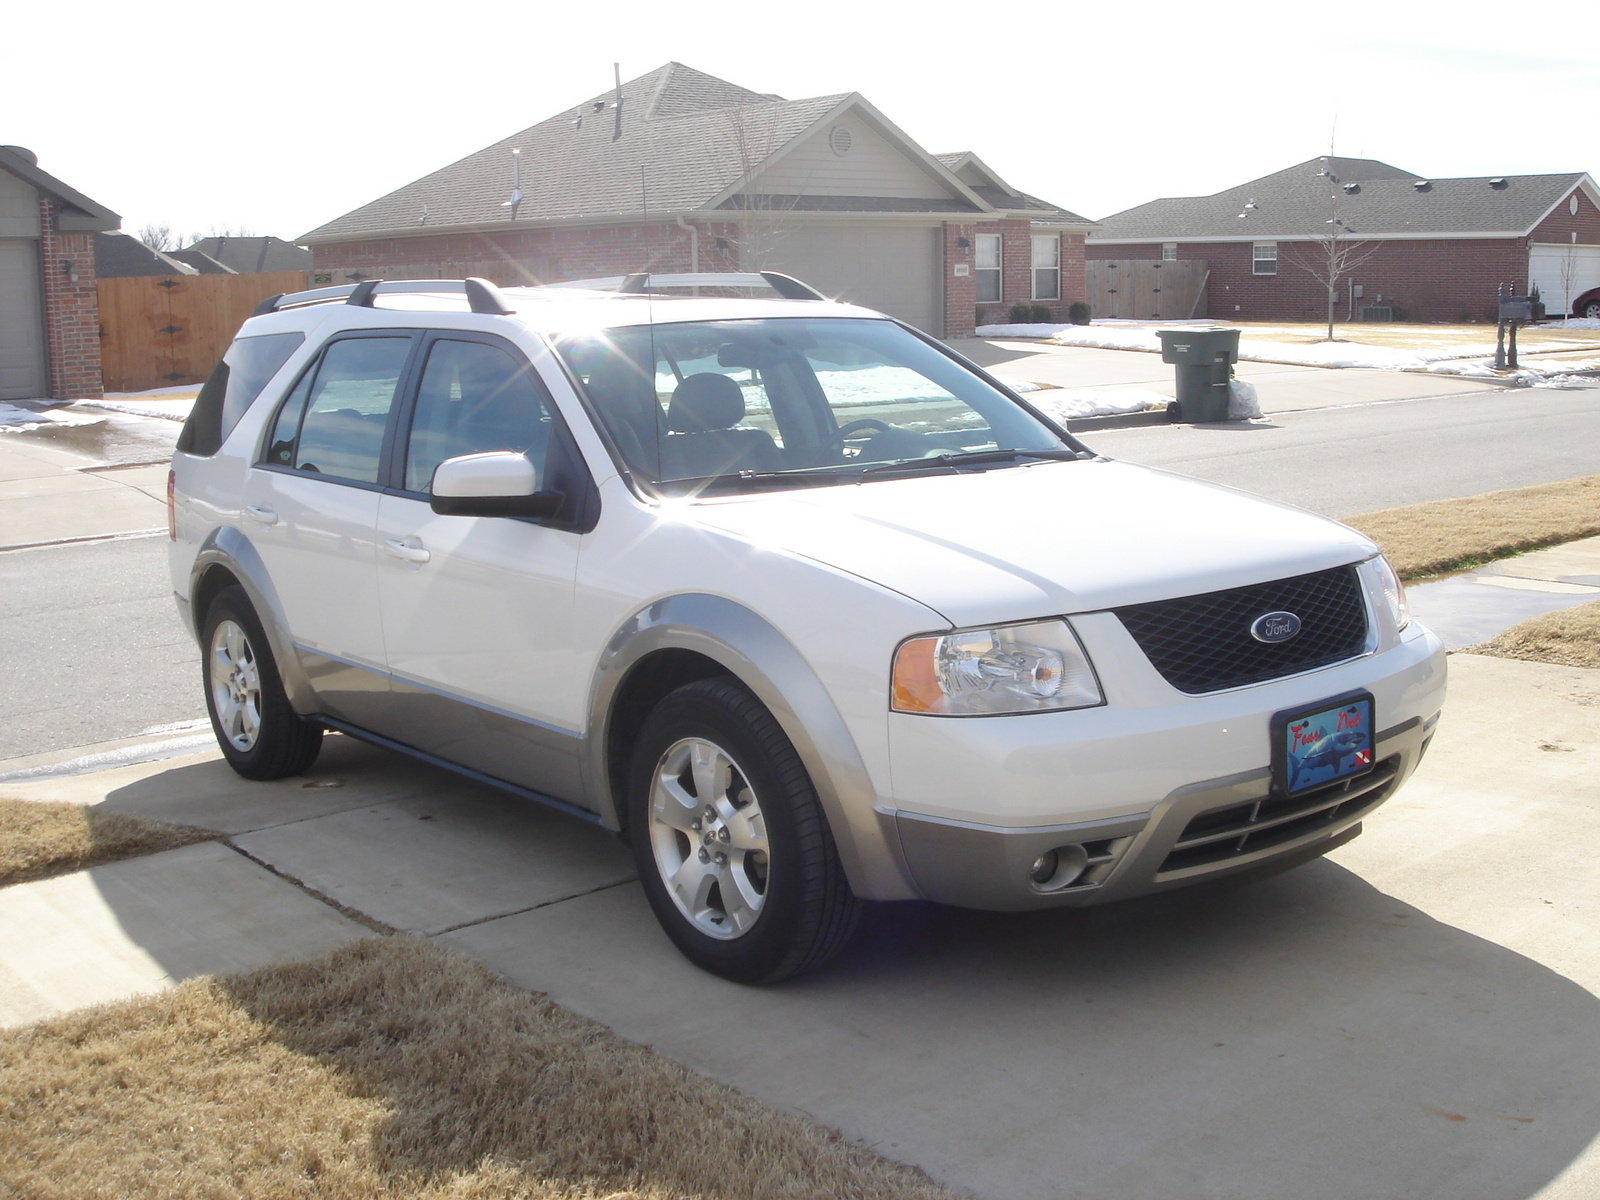 2007 Ford Freestyle Limited - SOLD 2007 Ford Freestyle Limited